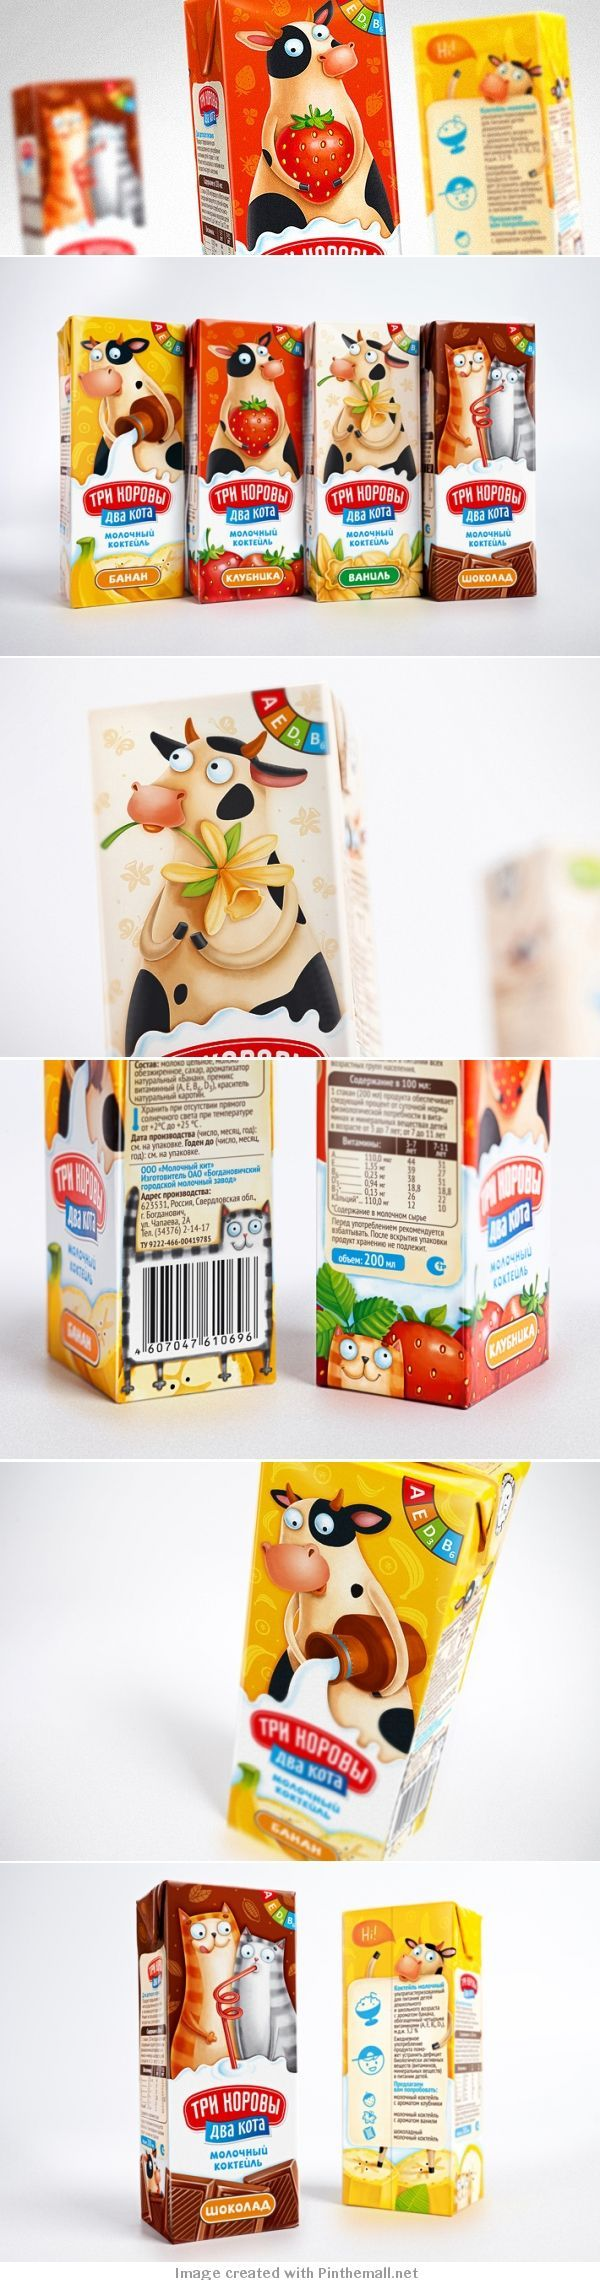 Child pack anatoly lebedeff pinterest - Candy candy diva futura ...